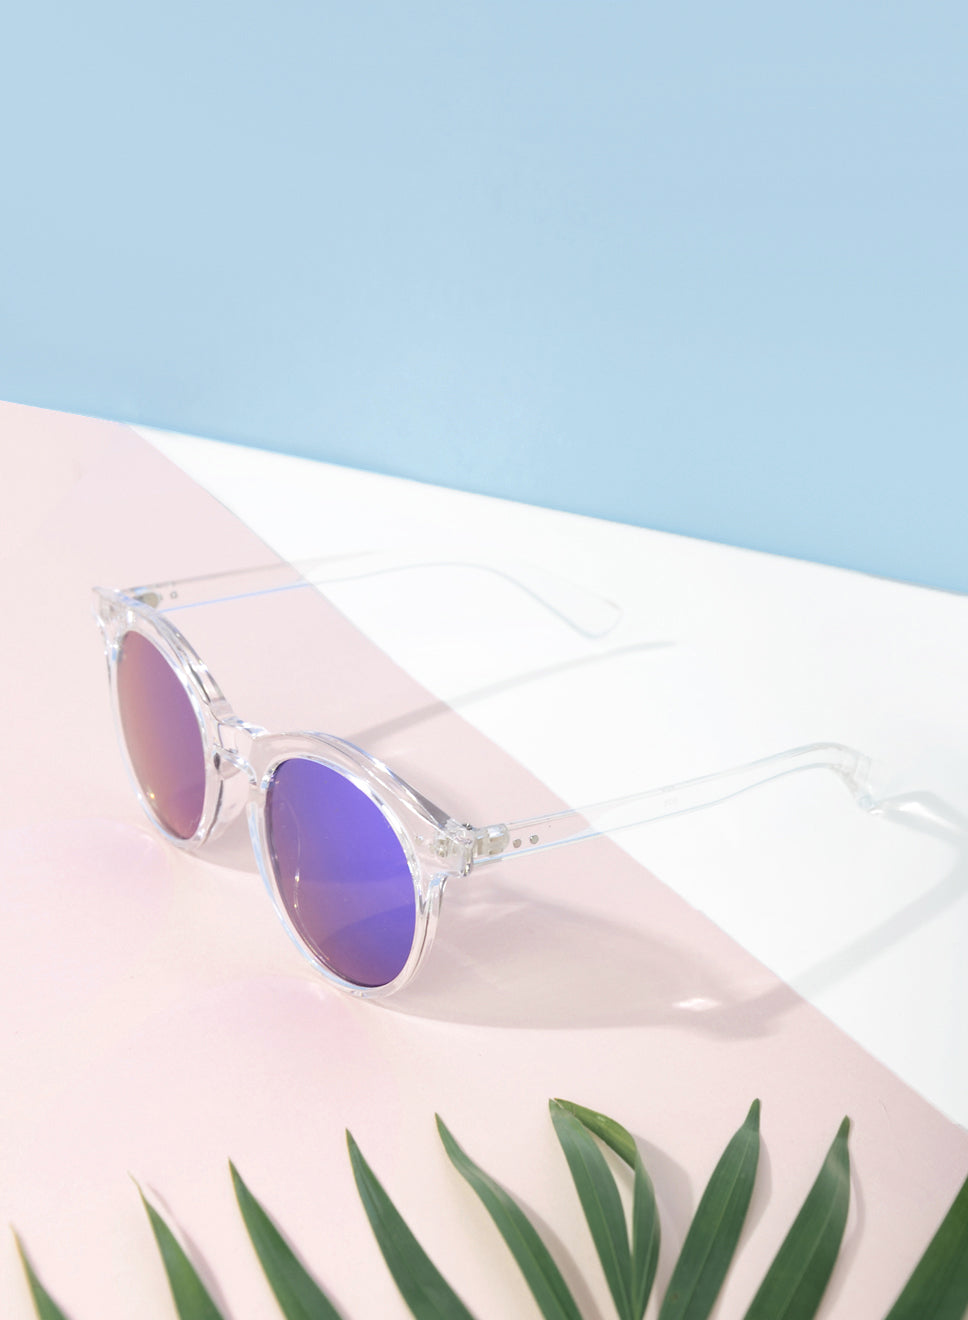 MASON CLEAR RIM MIRROR SUNNIES at $ 22.50 only sold at And Well Dressed Online Fashion Store Singapore